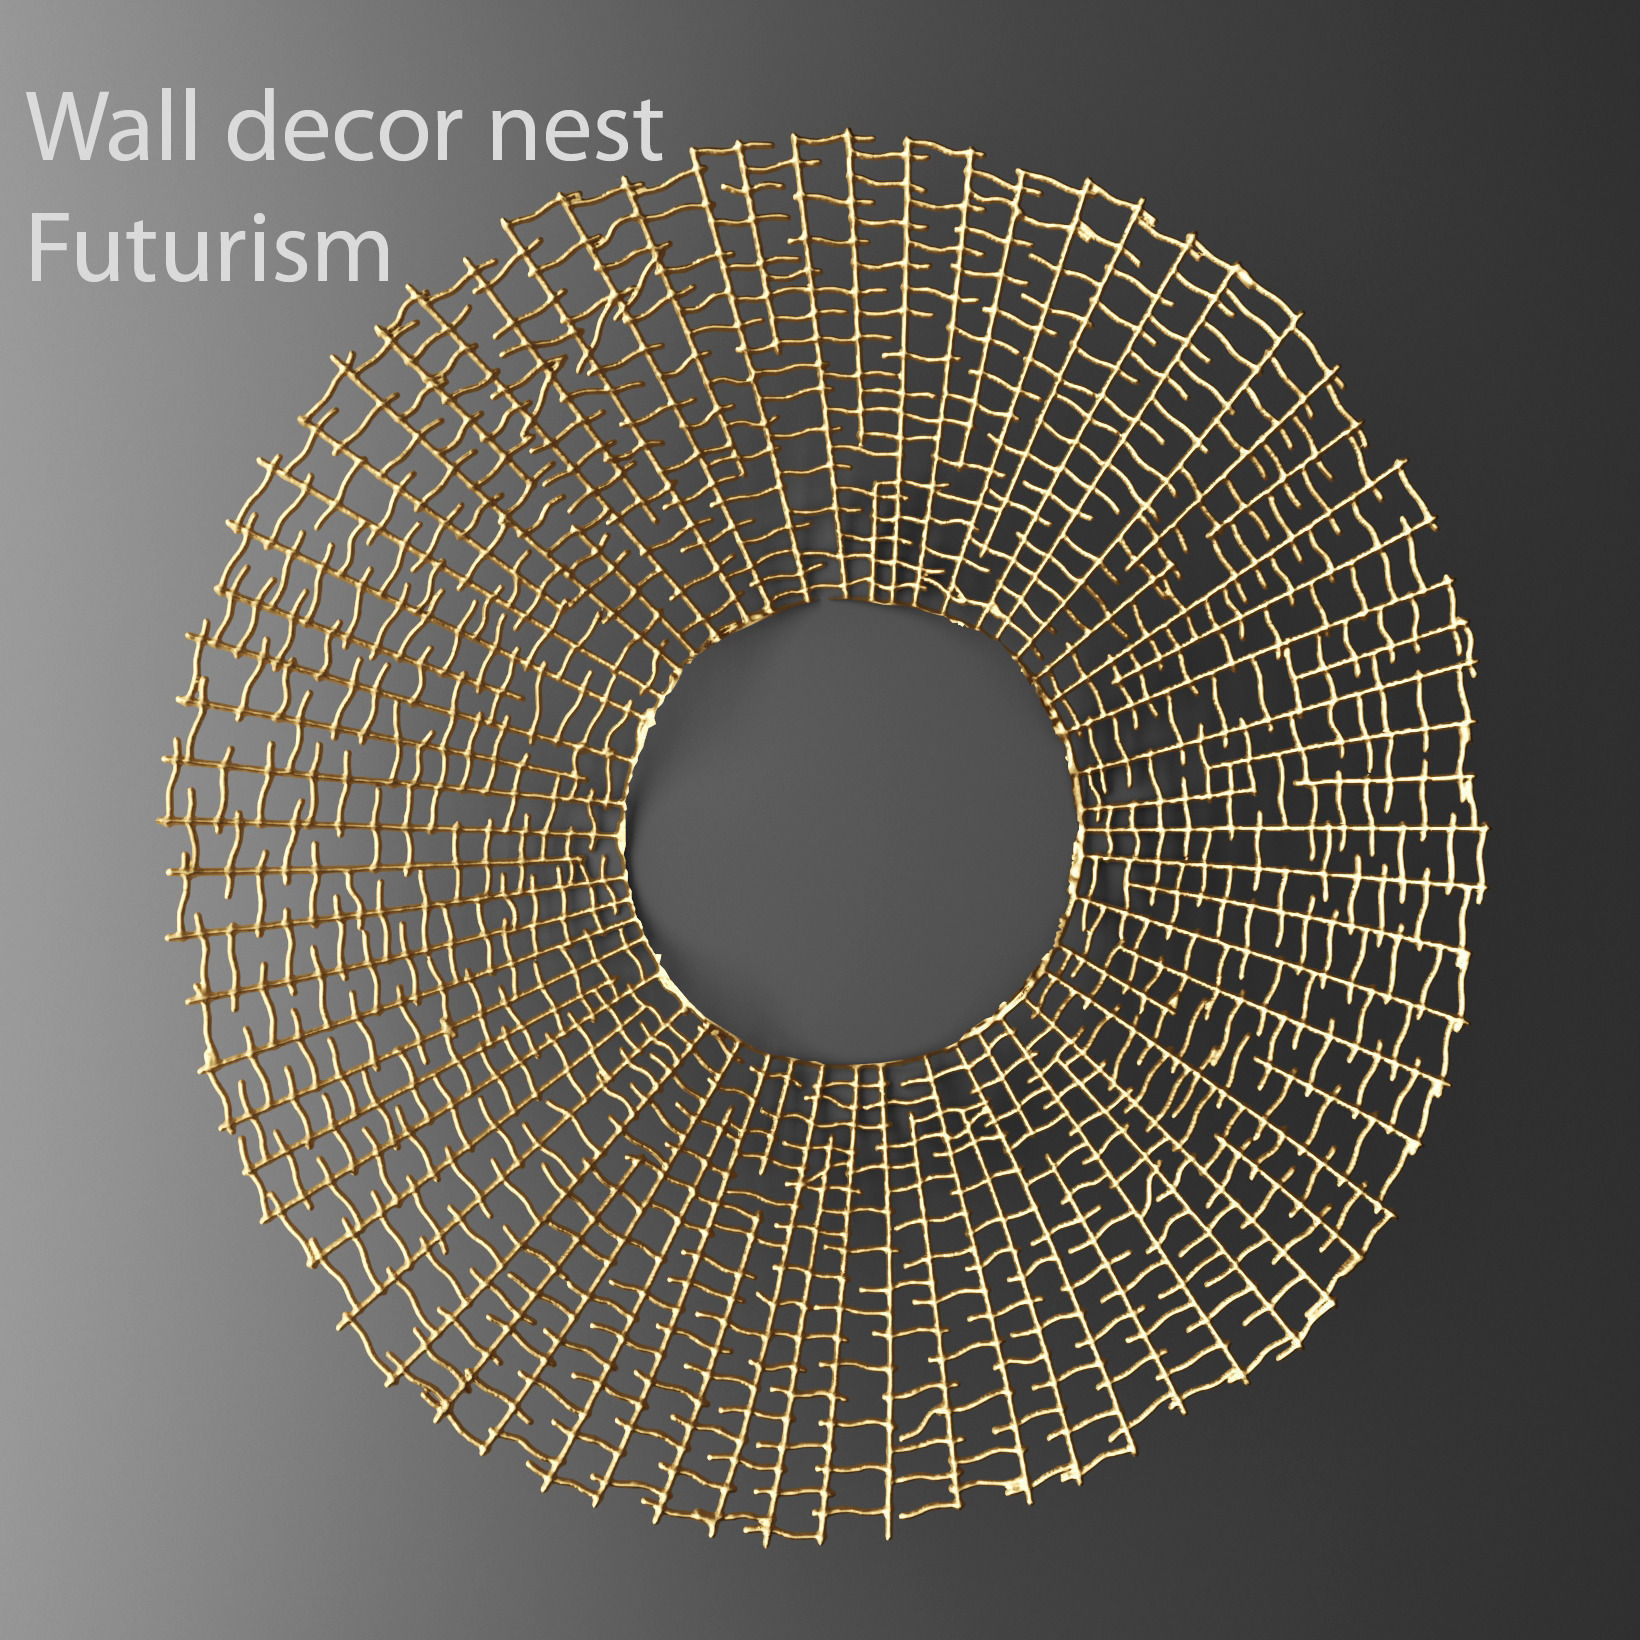 wall decor futuristic coral panel 3d 2 | cgtrader